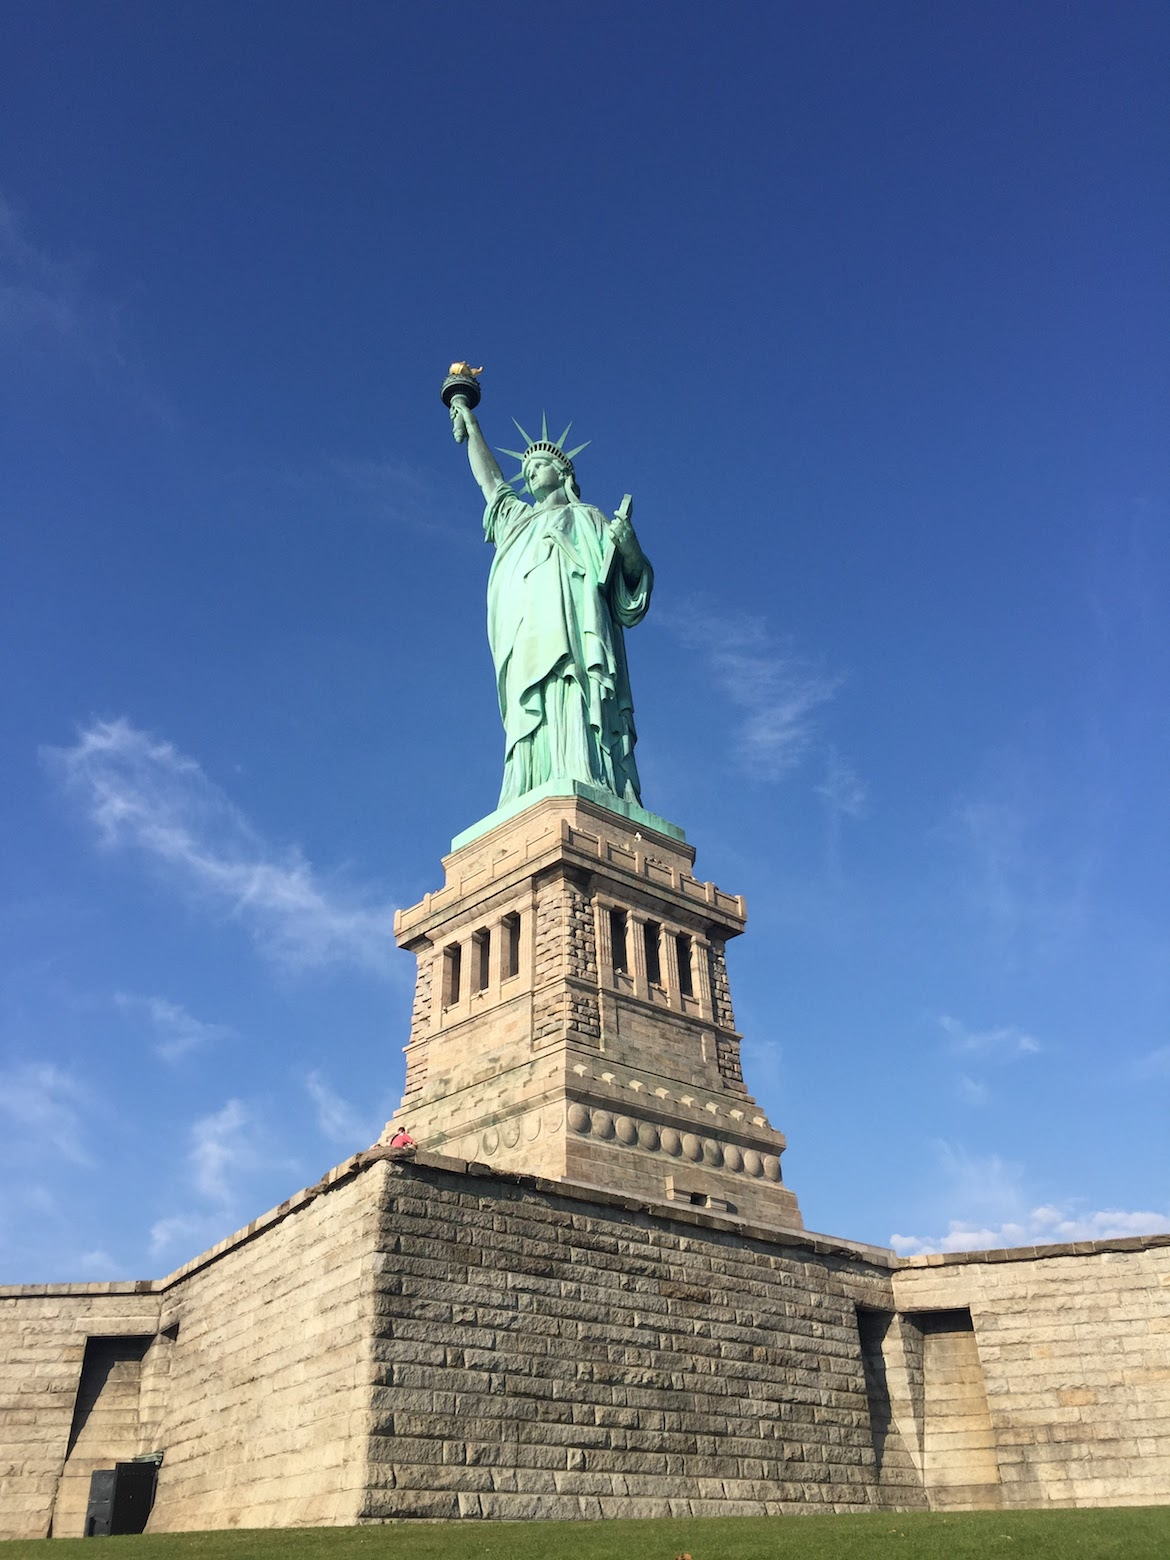 Statue of Liberty National Monument in Pictures